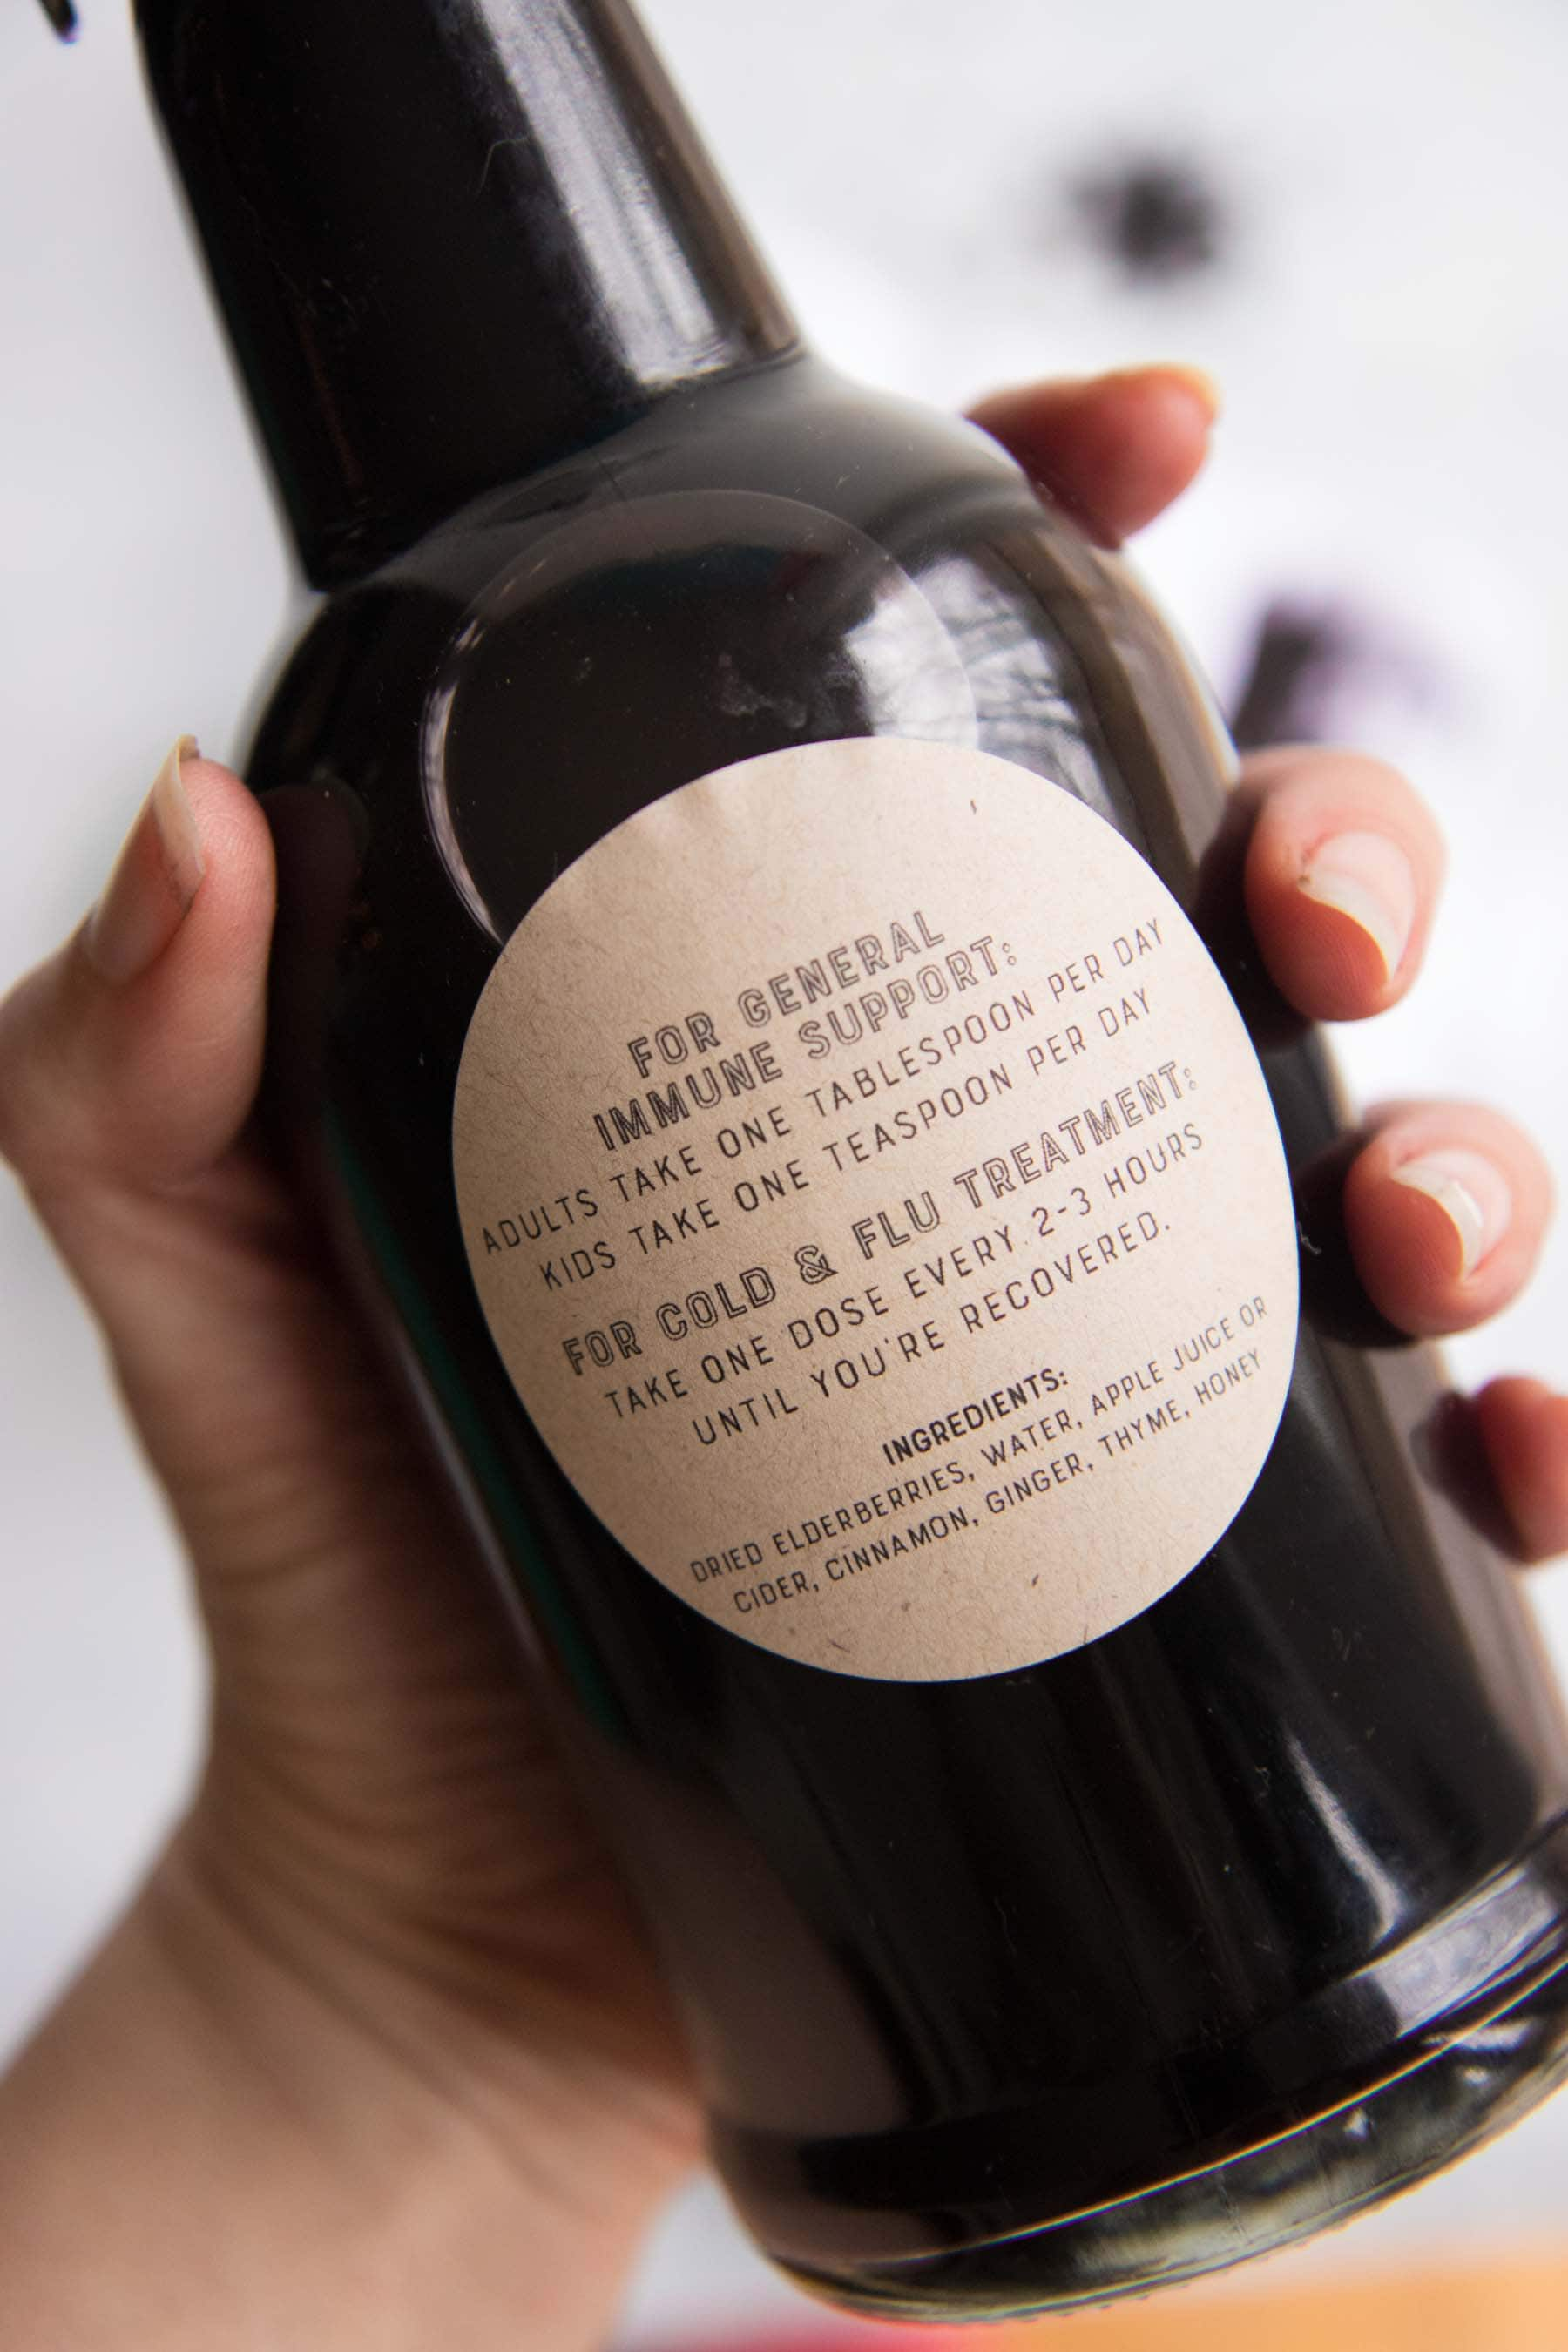 A hand holds a bottle filled with dark purple syrup, showing a label with dosing instructions.